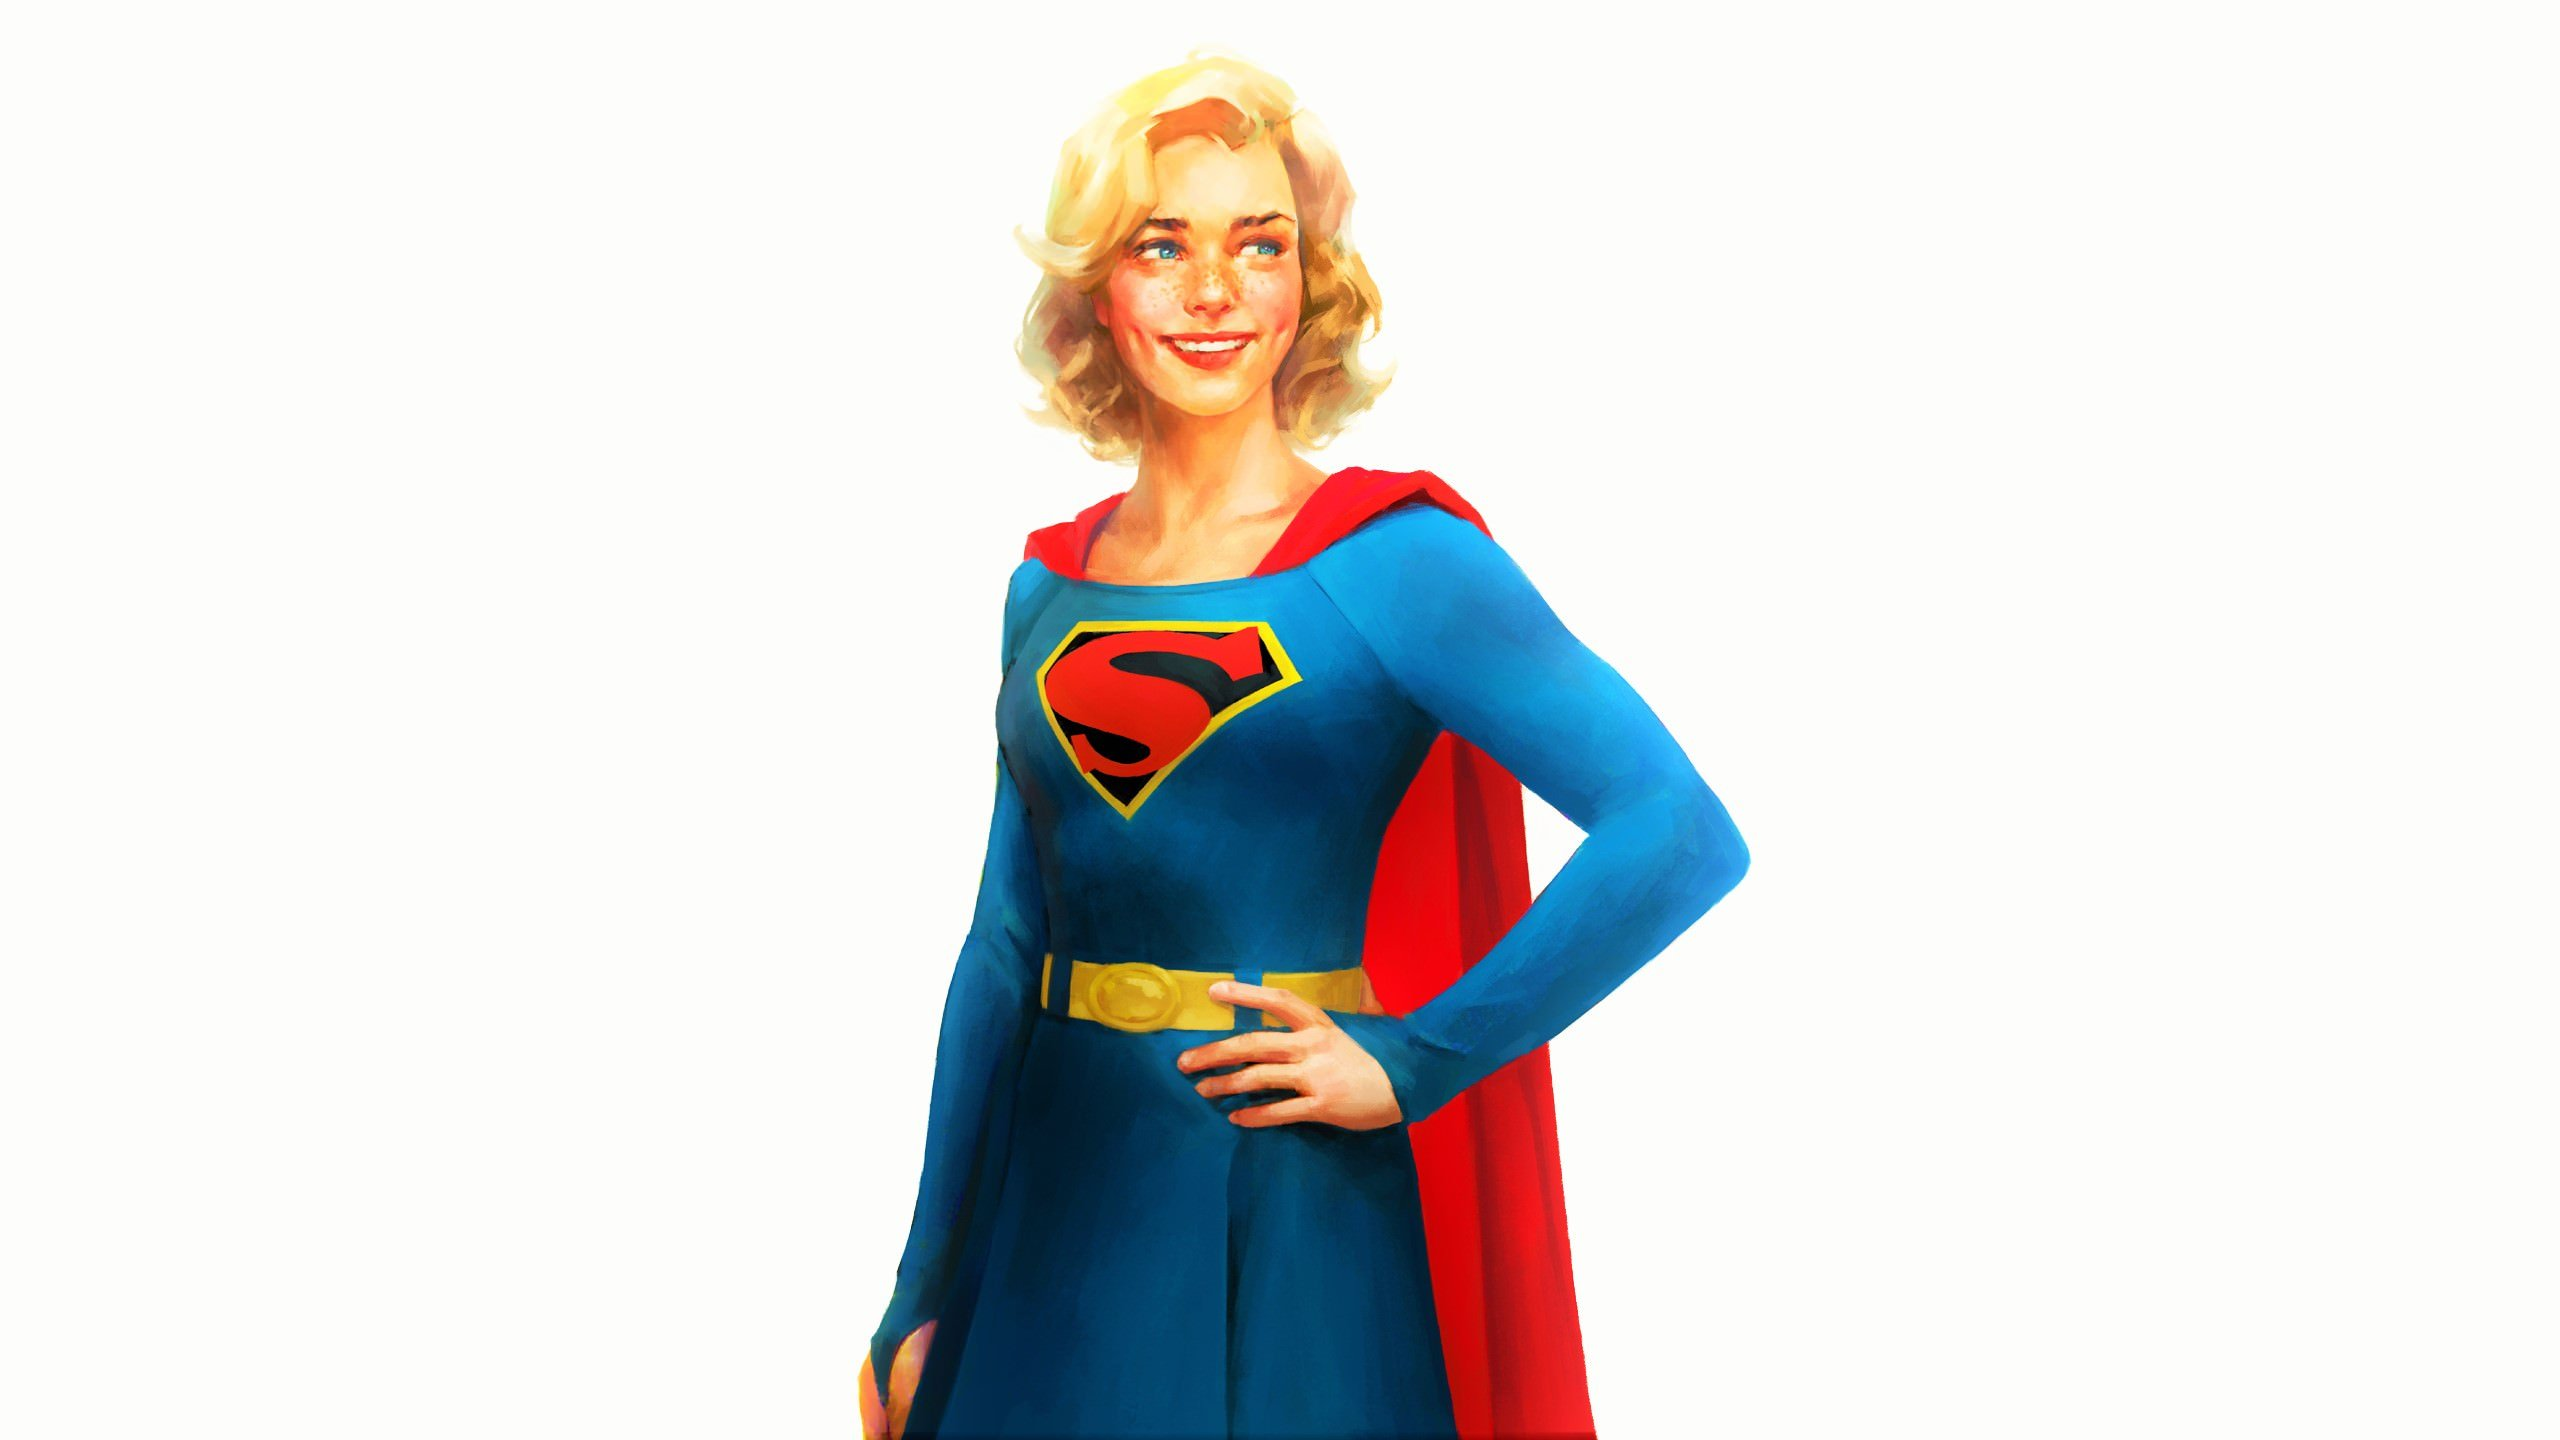 Supergirl Wallpapers Photos And Desktop Backgrounds Up To 8K 7680x4320 Resolution